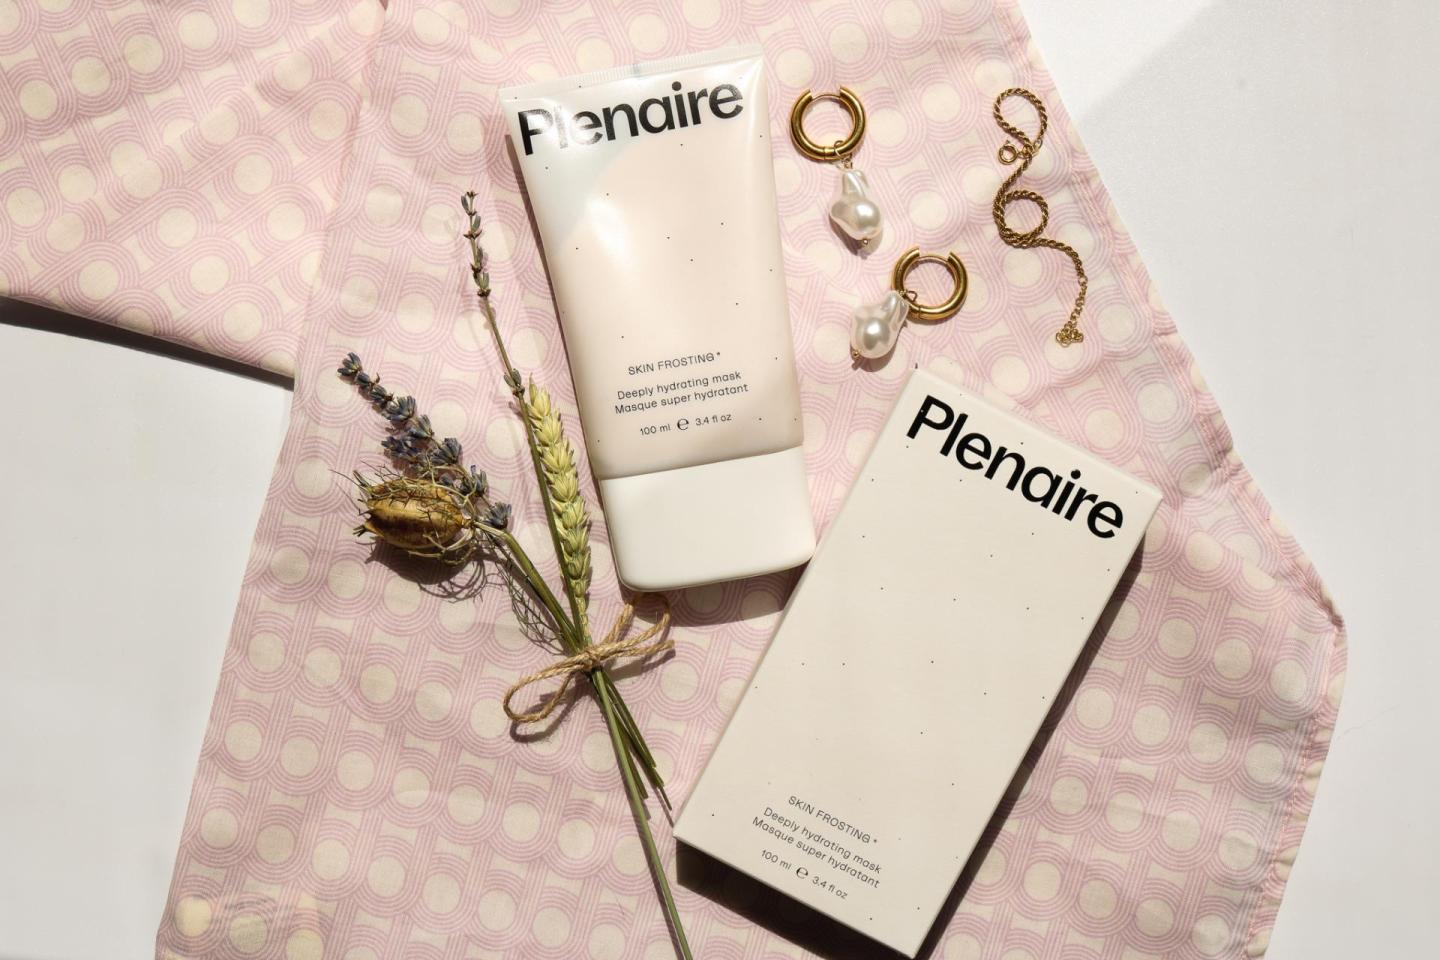 Plenaire Skin Frosting Deeply Hydrating Mask review